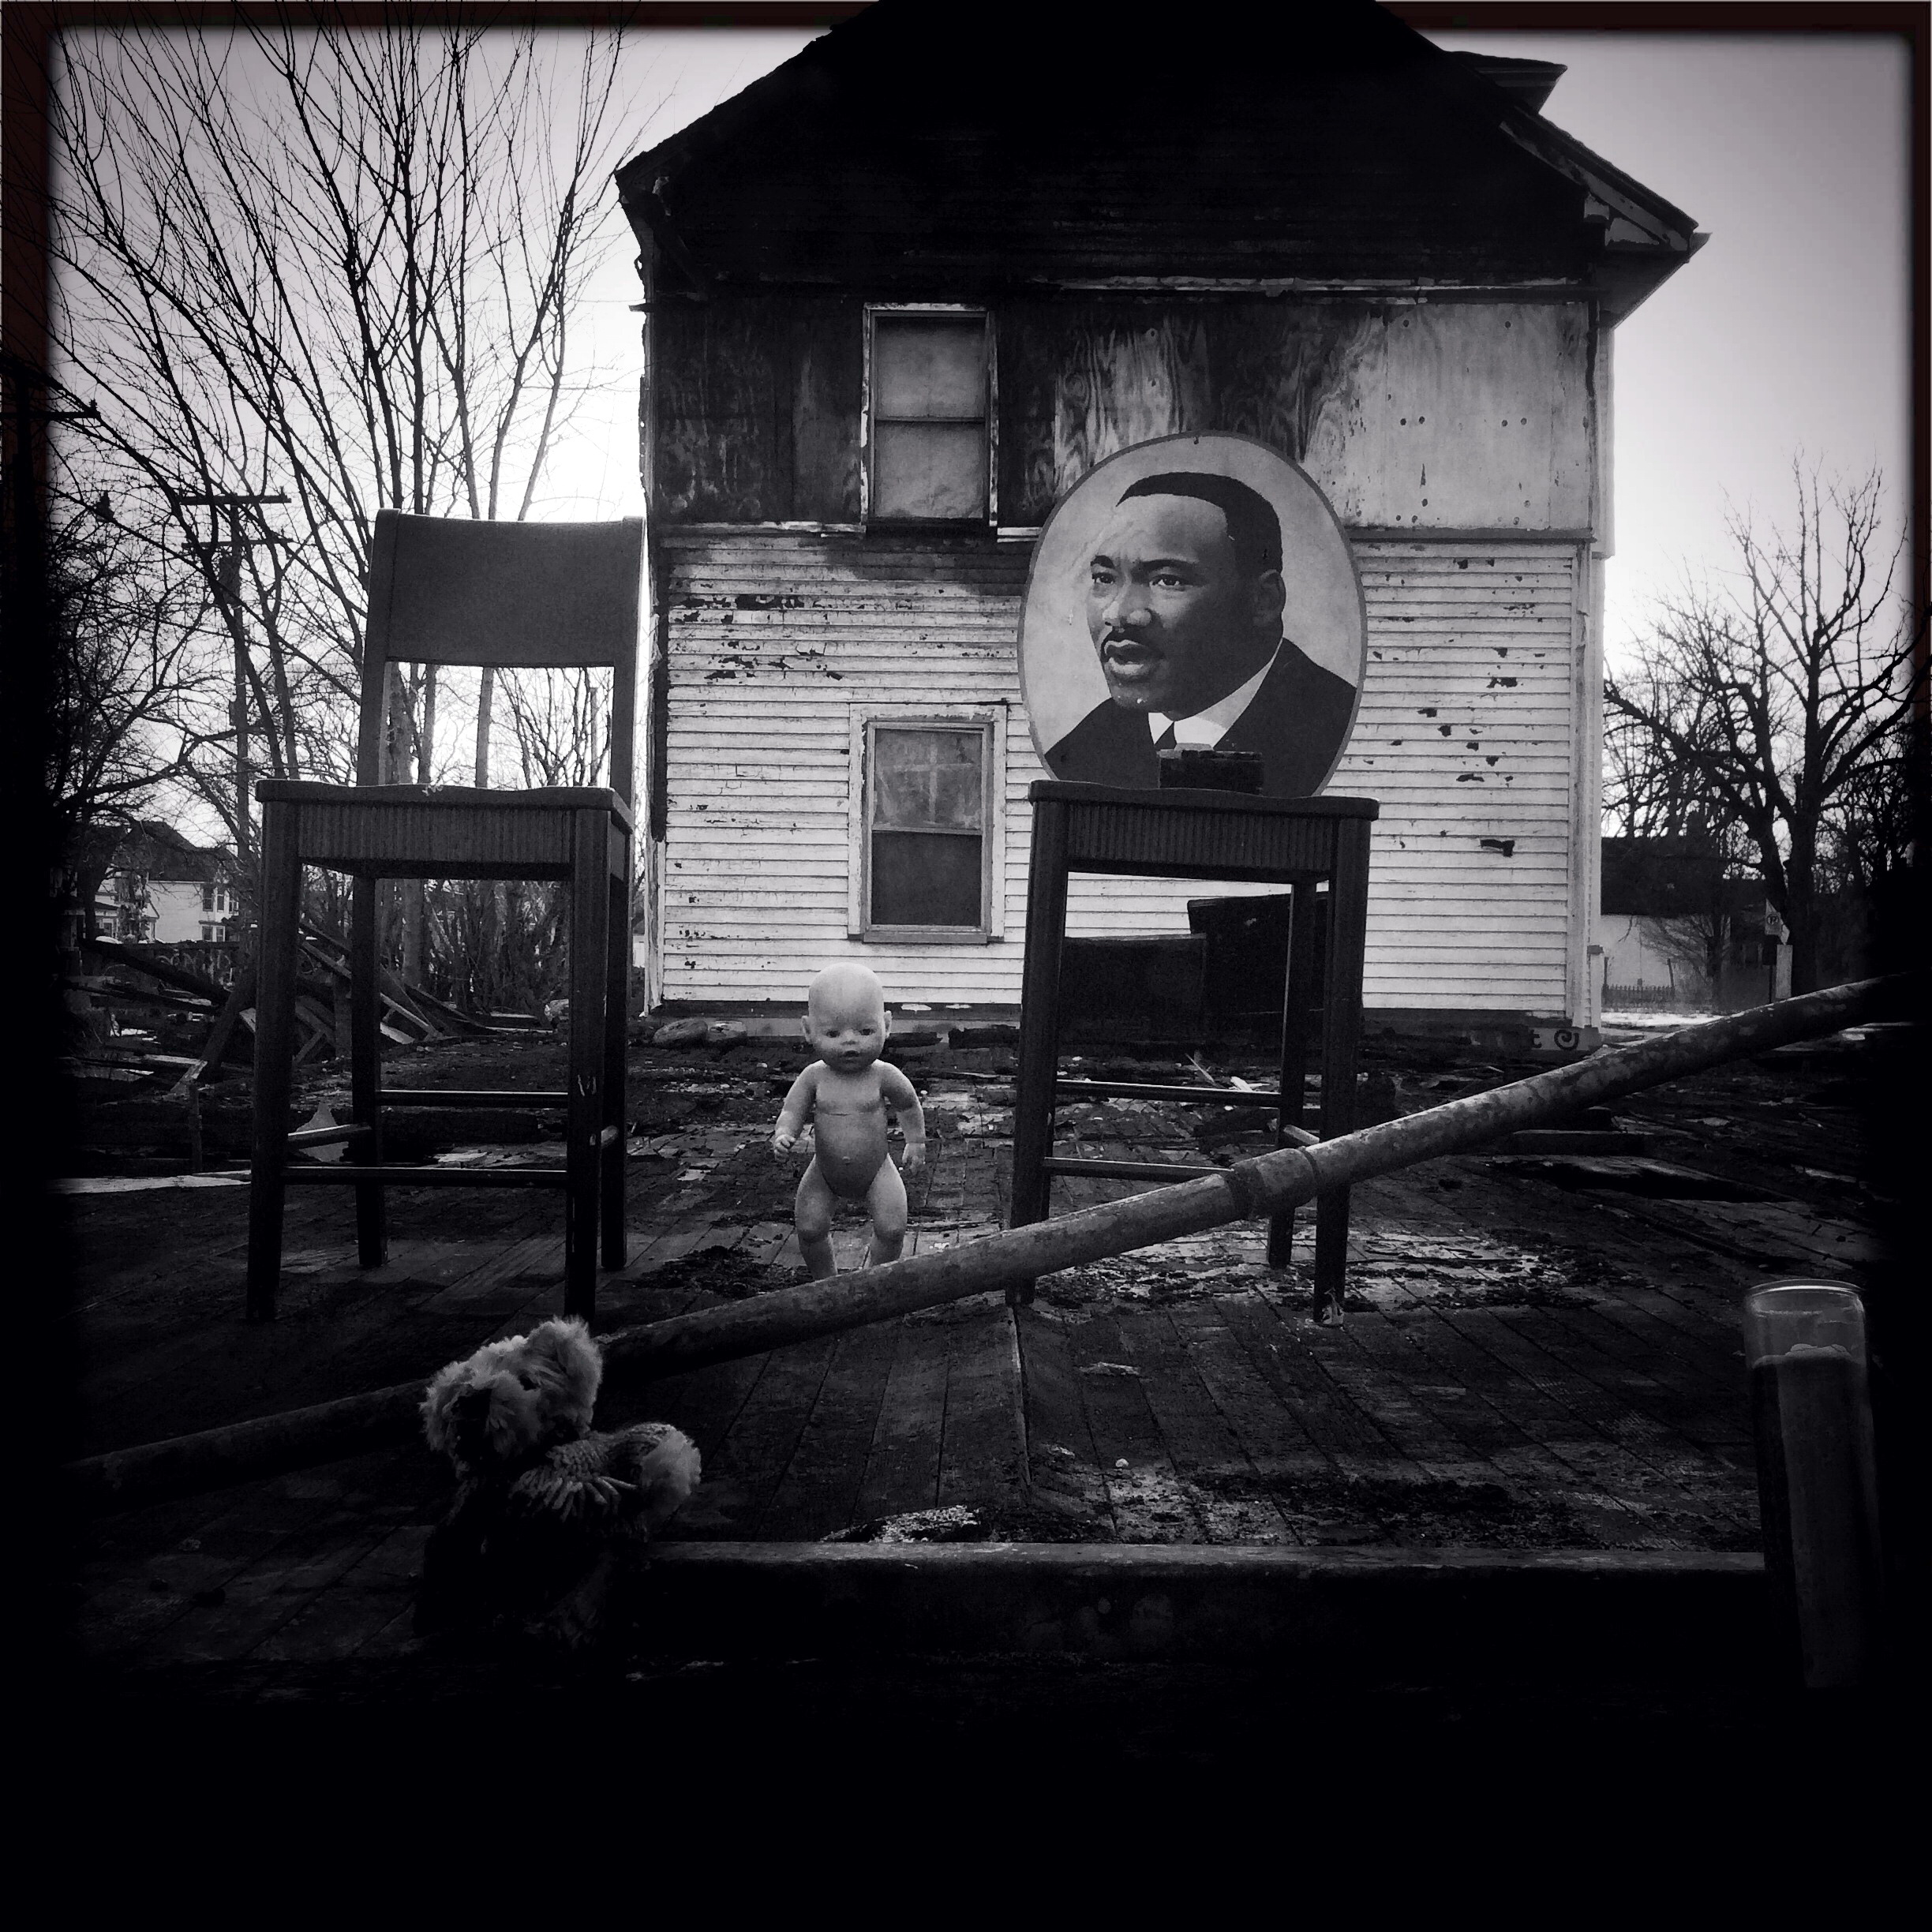 The scene at The Heidelberg Project, an art installation by Tyree Guyton, several of the buildings he has decorated have been burned down by an arsonist.© Nancy Andrews